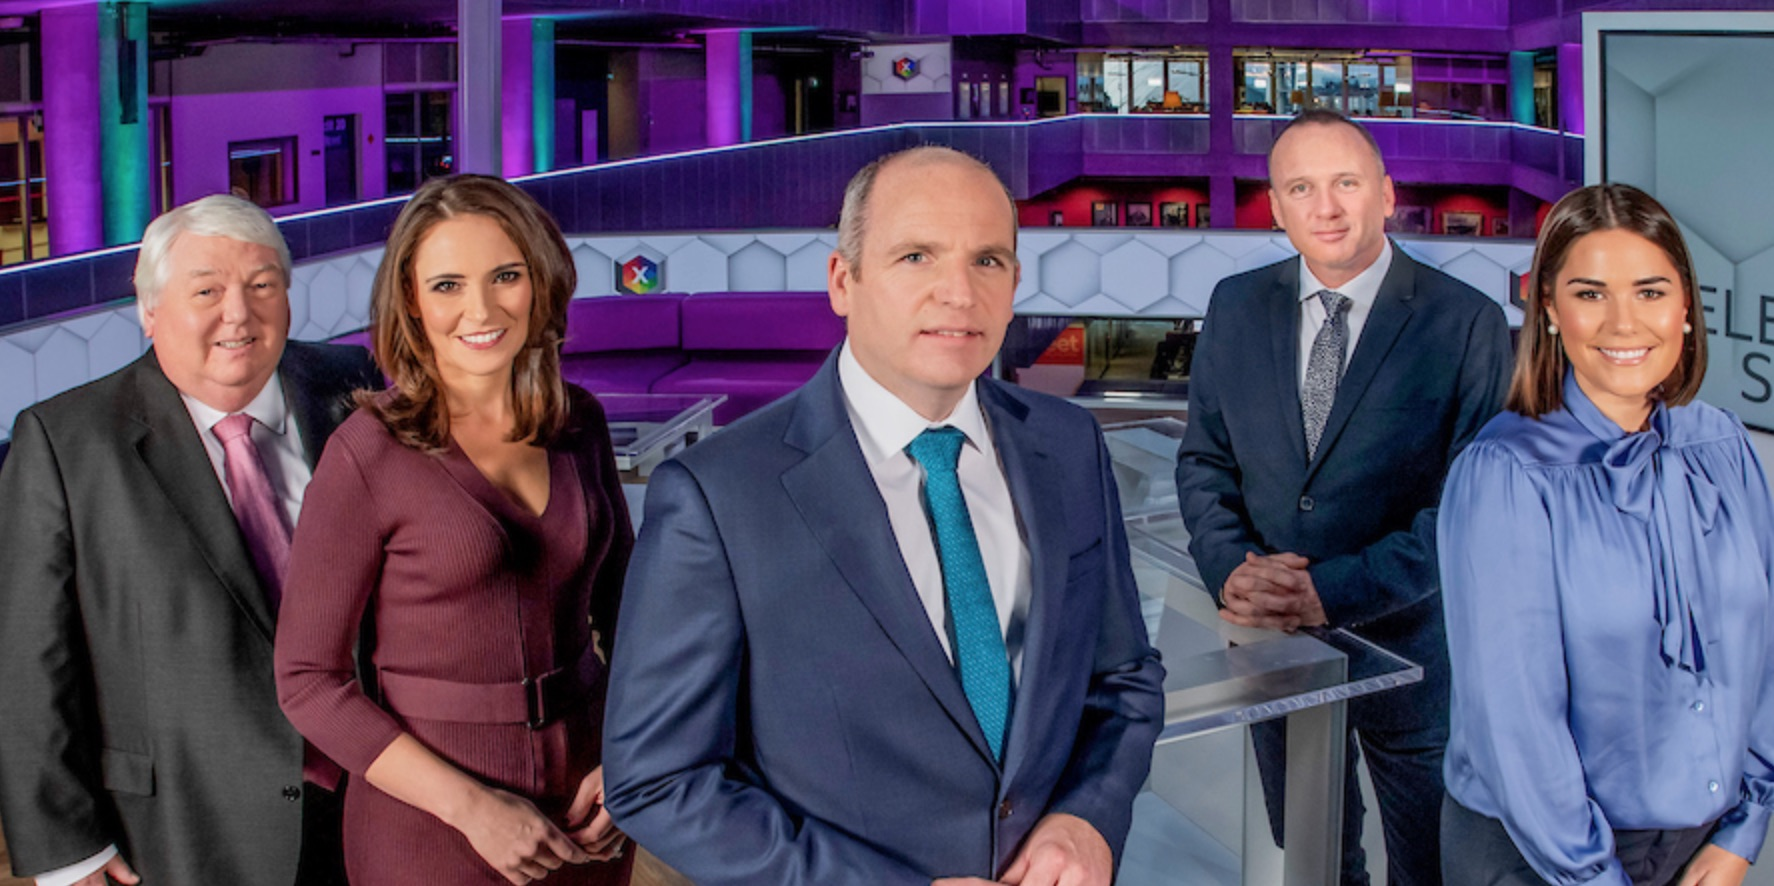 Media release: BBC Scotland's election night team